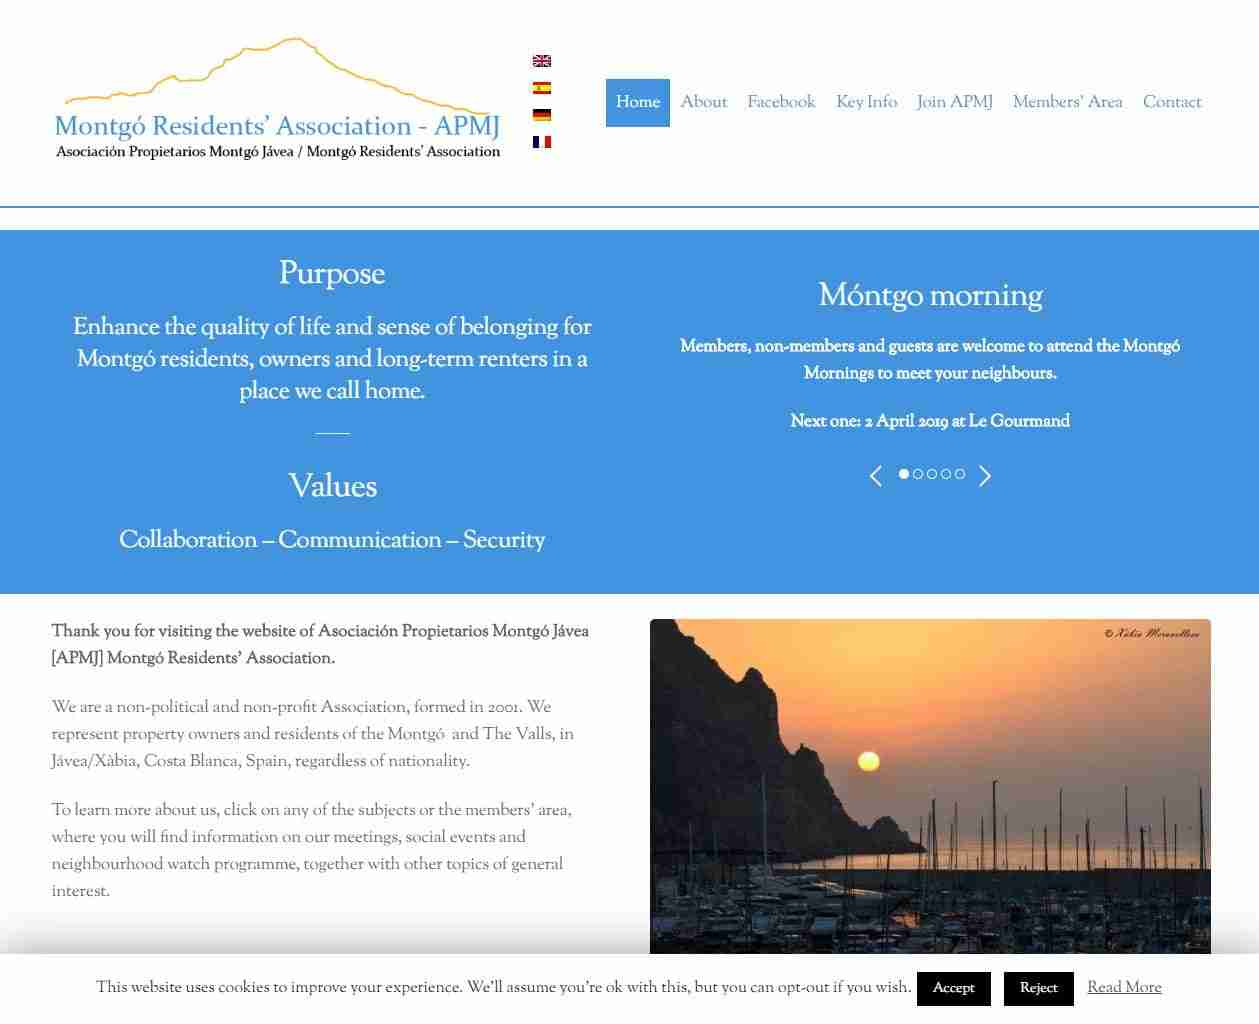 Spain Web Design and more by Gandy-Draper | A Job Well Done